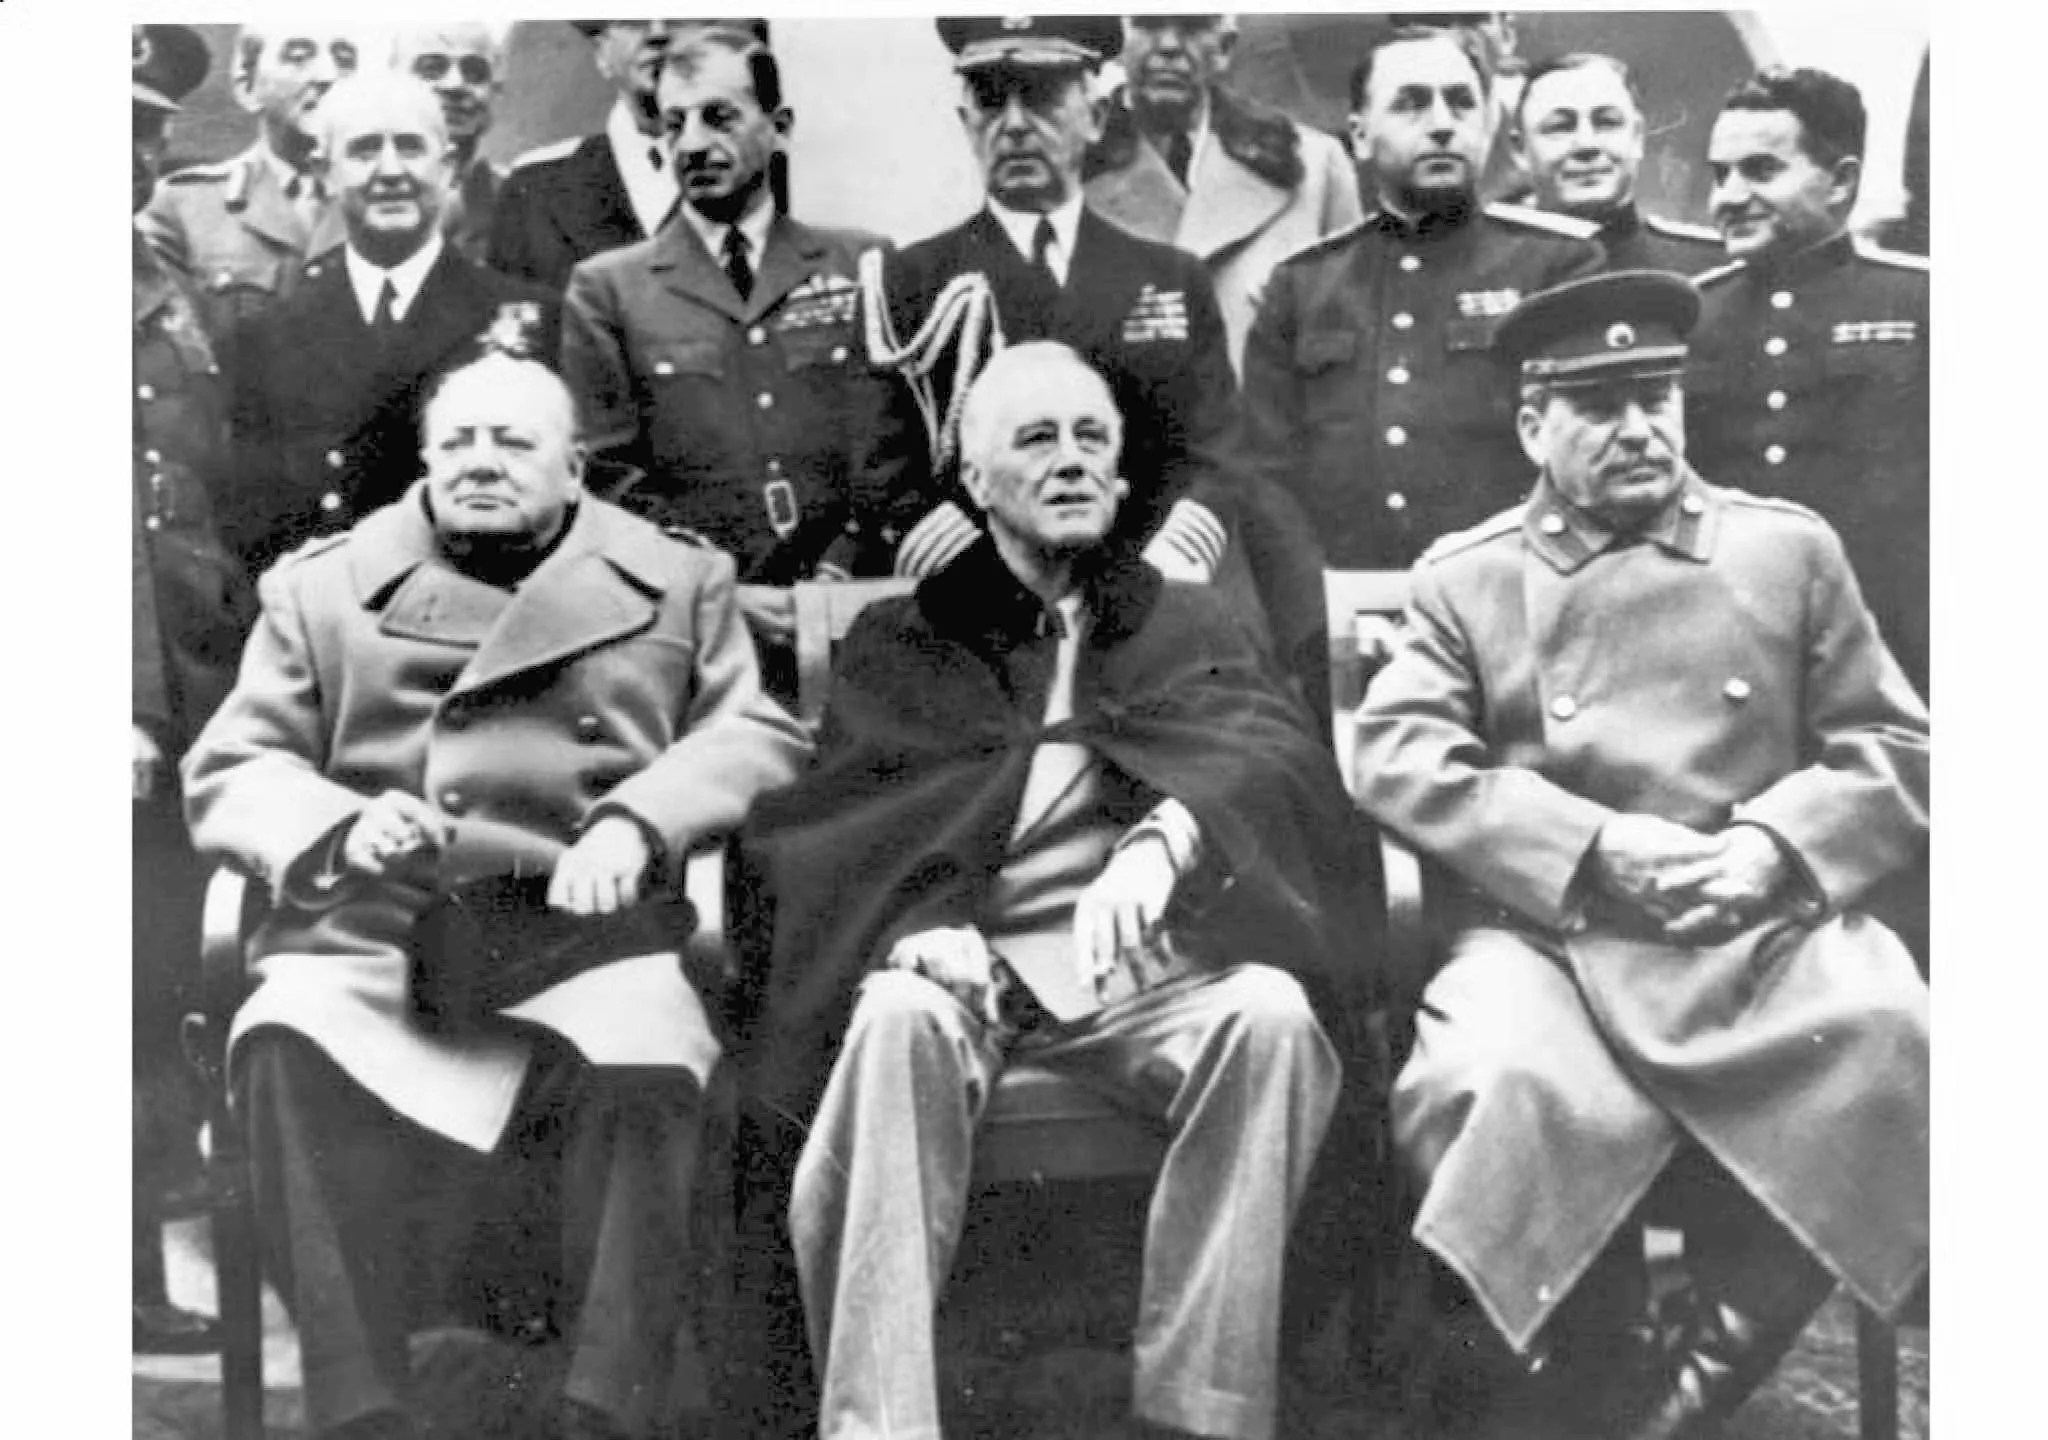 This file photo shows from left to right: British Prime Minister Winston Churchill, US President Franklin D. Roosevelt and Chairman of the Soviet of People's Commissars of the USSR Joseph Stalin at the resort town of Yalta on the Black Sea .